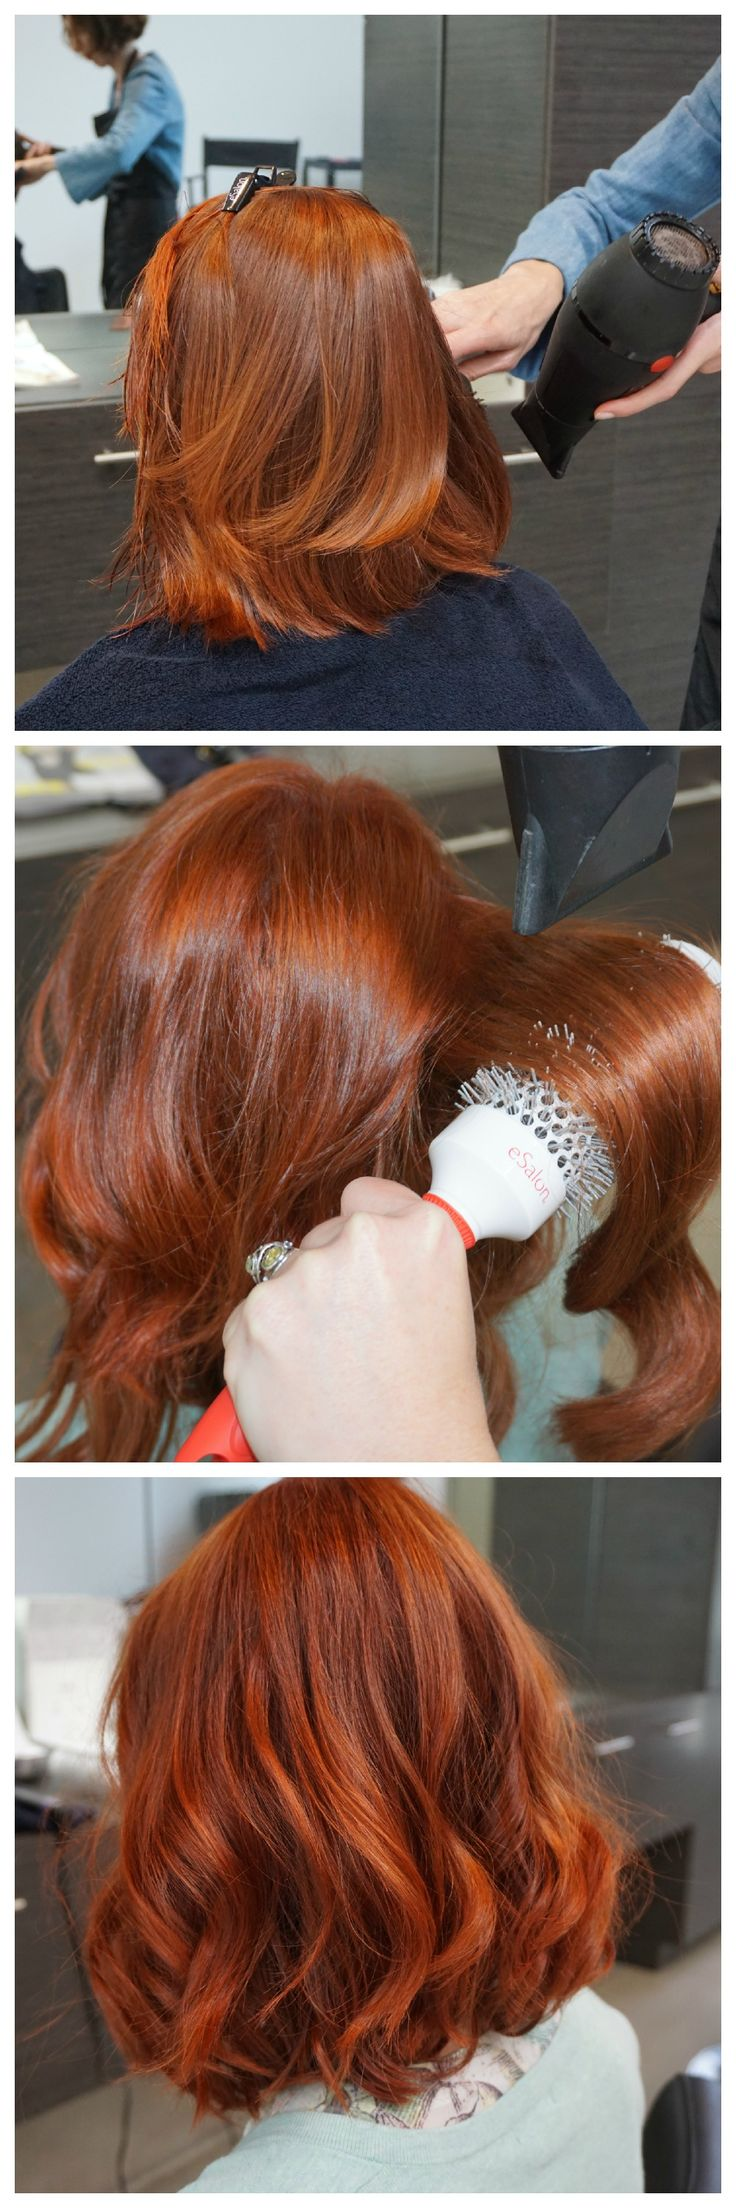 Looking to get vibrant hair color on a budget? eSalon has developed a cost effective and professional solution for customized hair color delivered straight your home! Check out why this new home hair color was voted #1 by Allure.